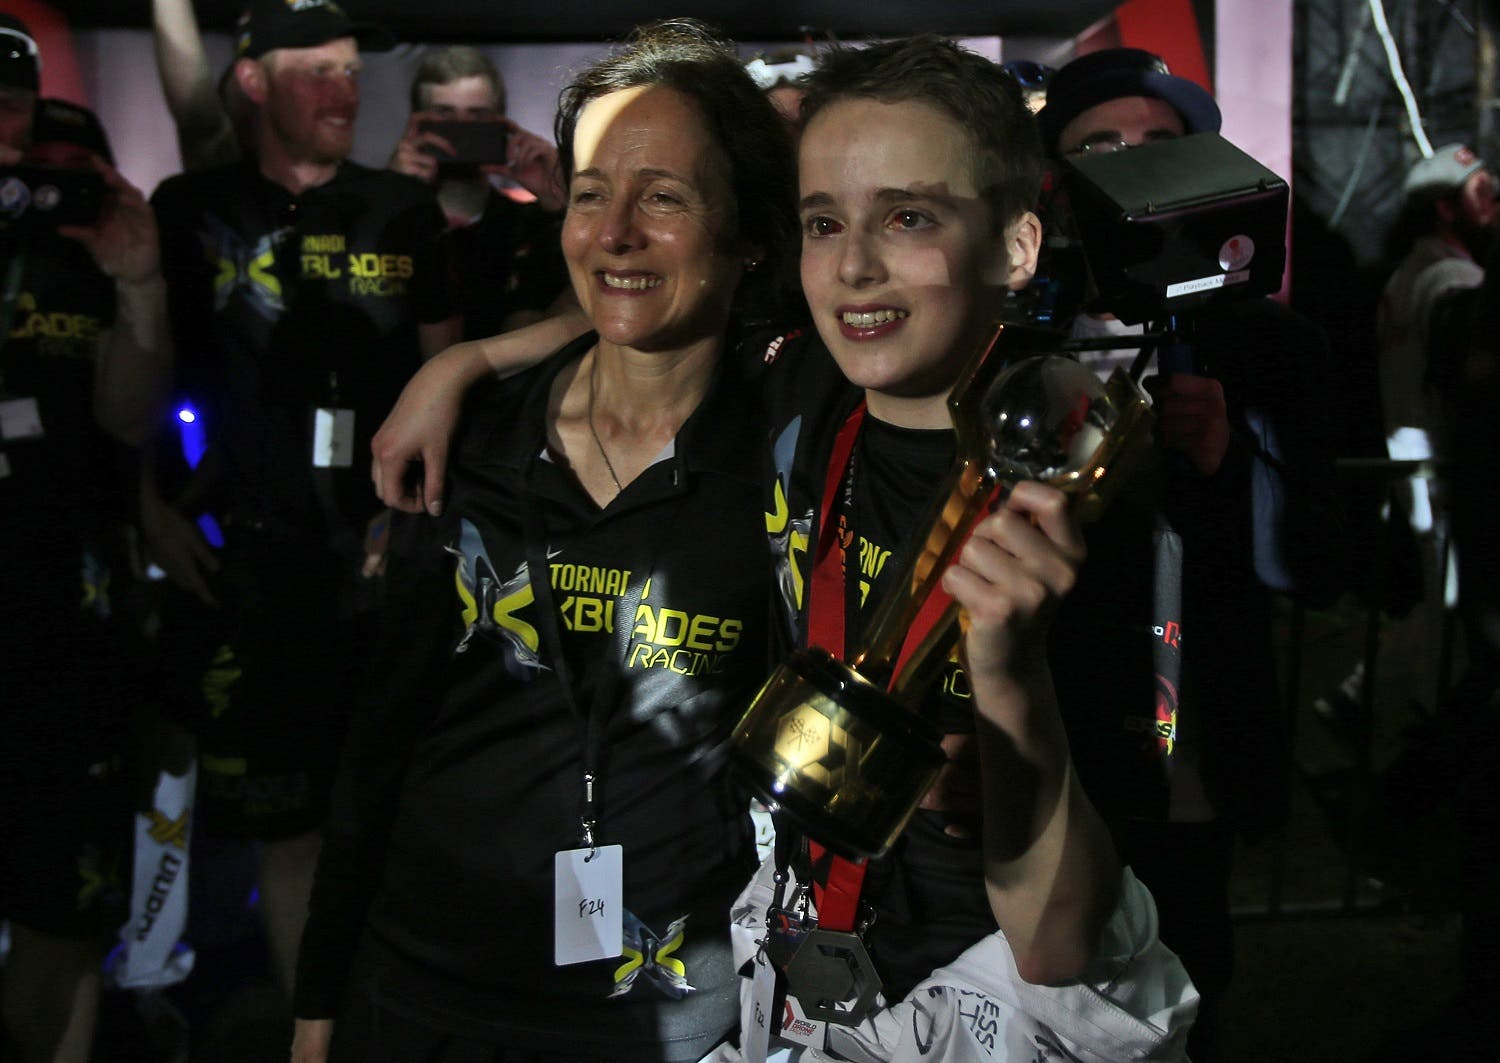 Luke Bannister of Somerset holds the trophy next to his mother (Photo: AP)